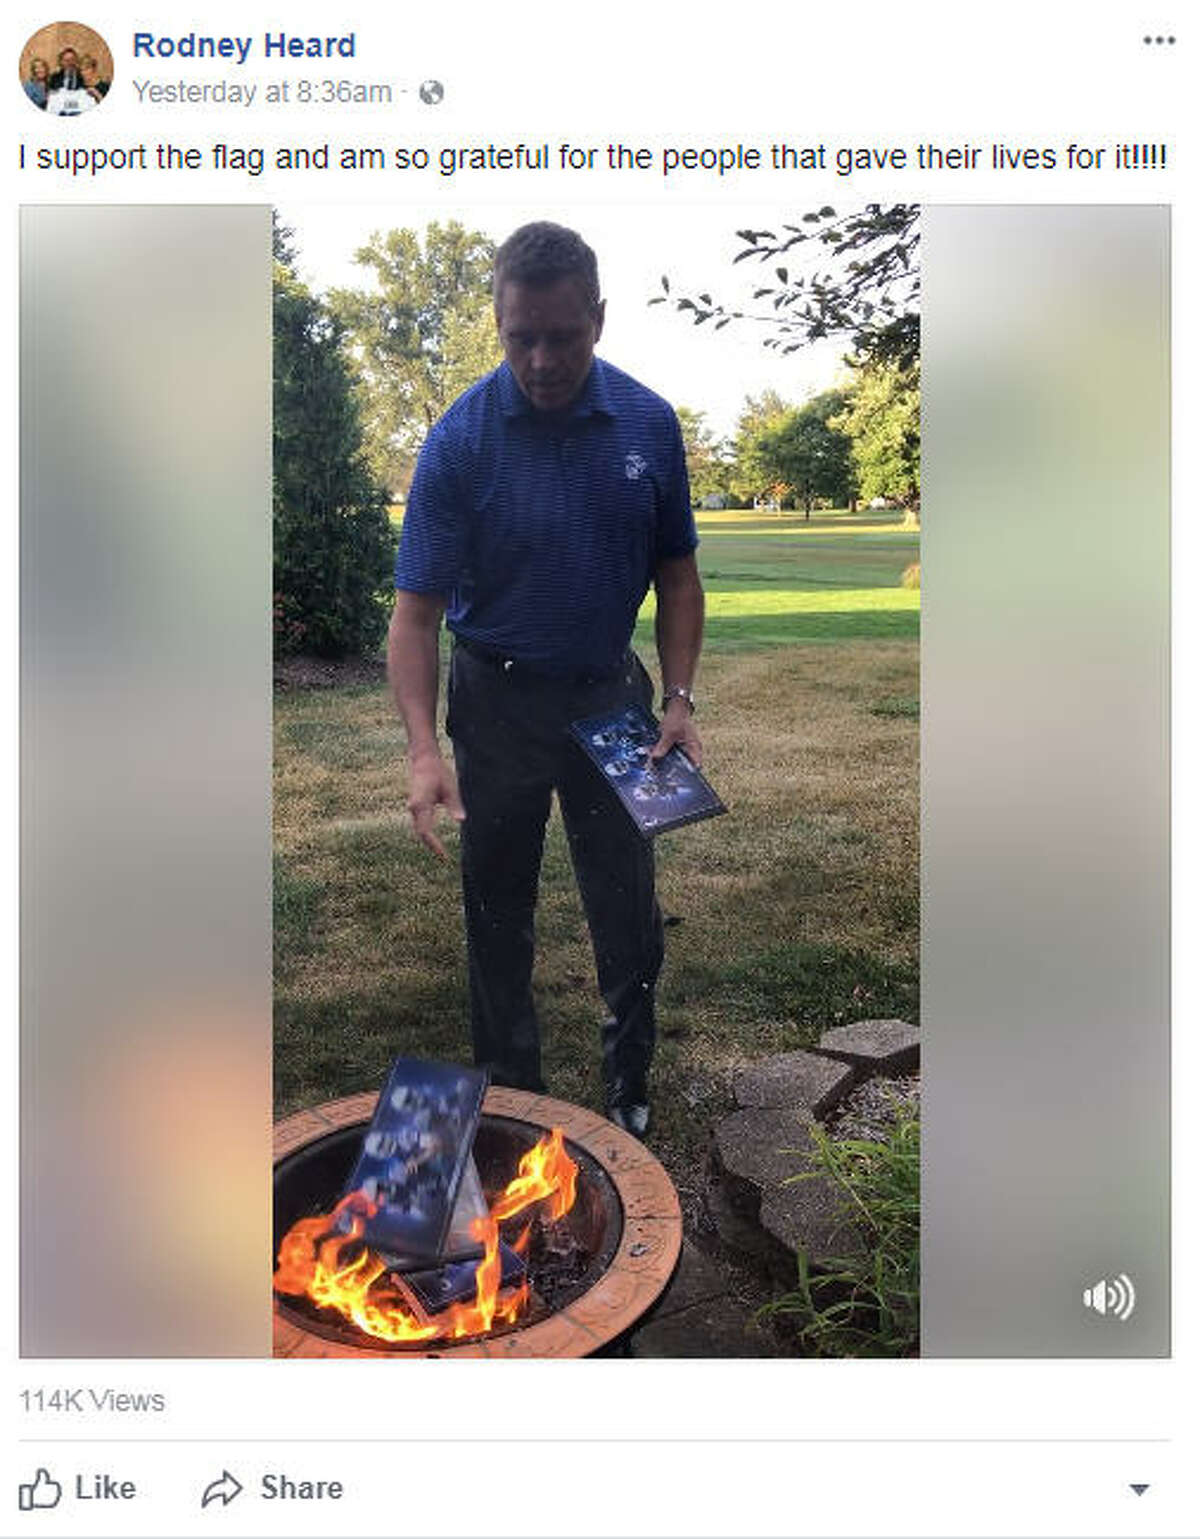 Colts fan and Marine Rodney Heard burned his season tickets on Facebook Live following the Colts national anthem protest on Sept. 24, 2017.Image source: Facebook